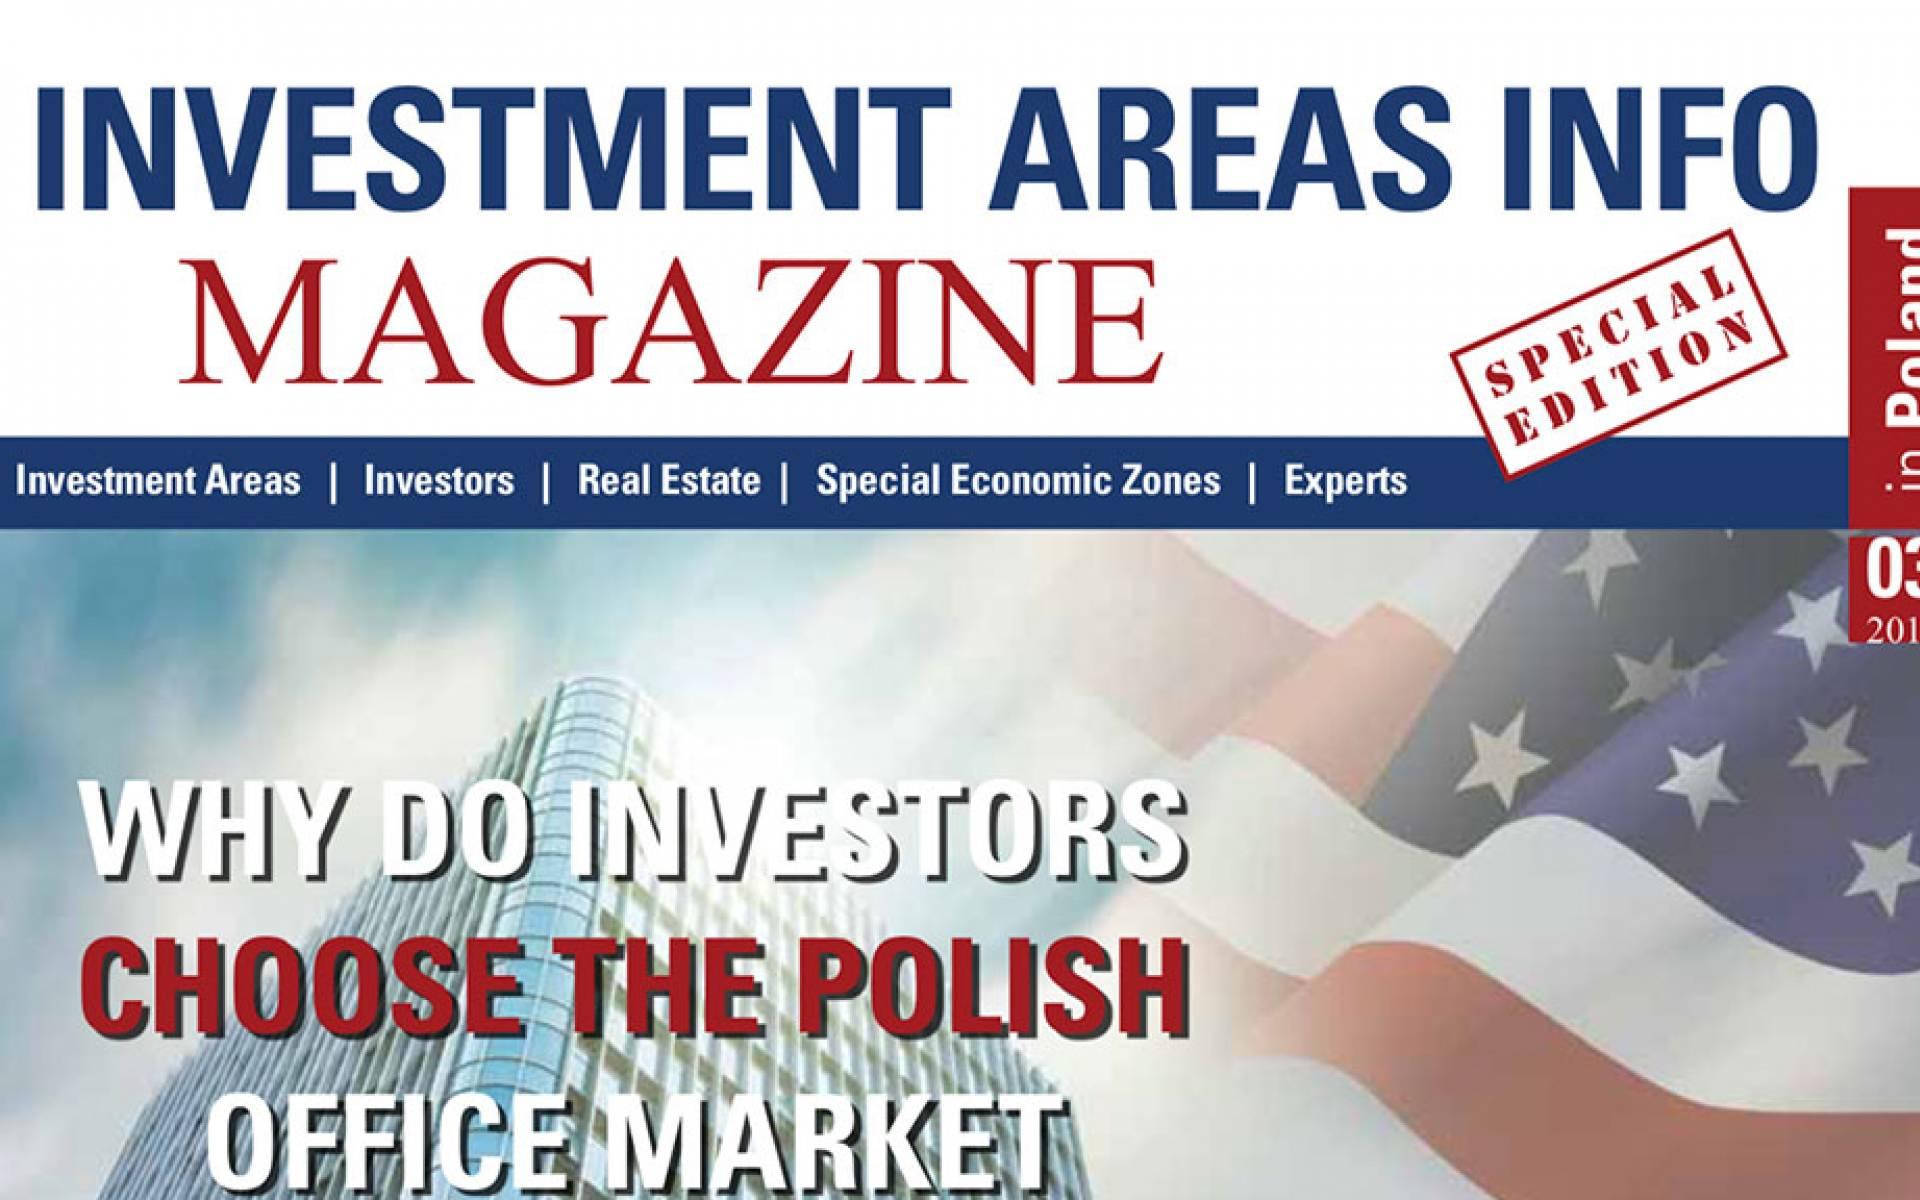 Investment Areas Info Magazine Nr. 03/2016